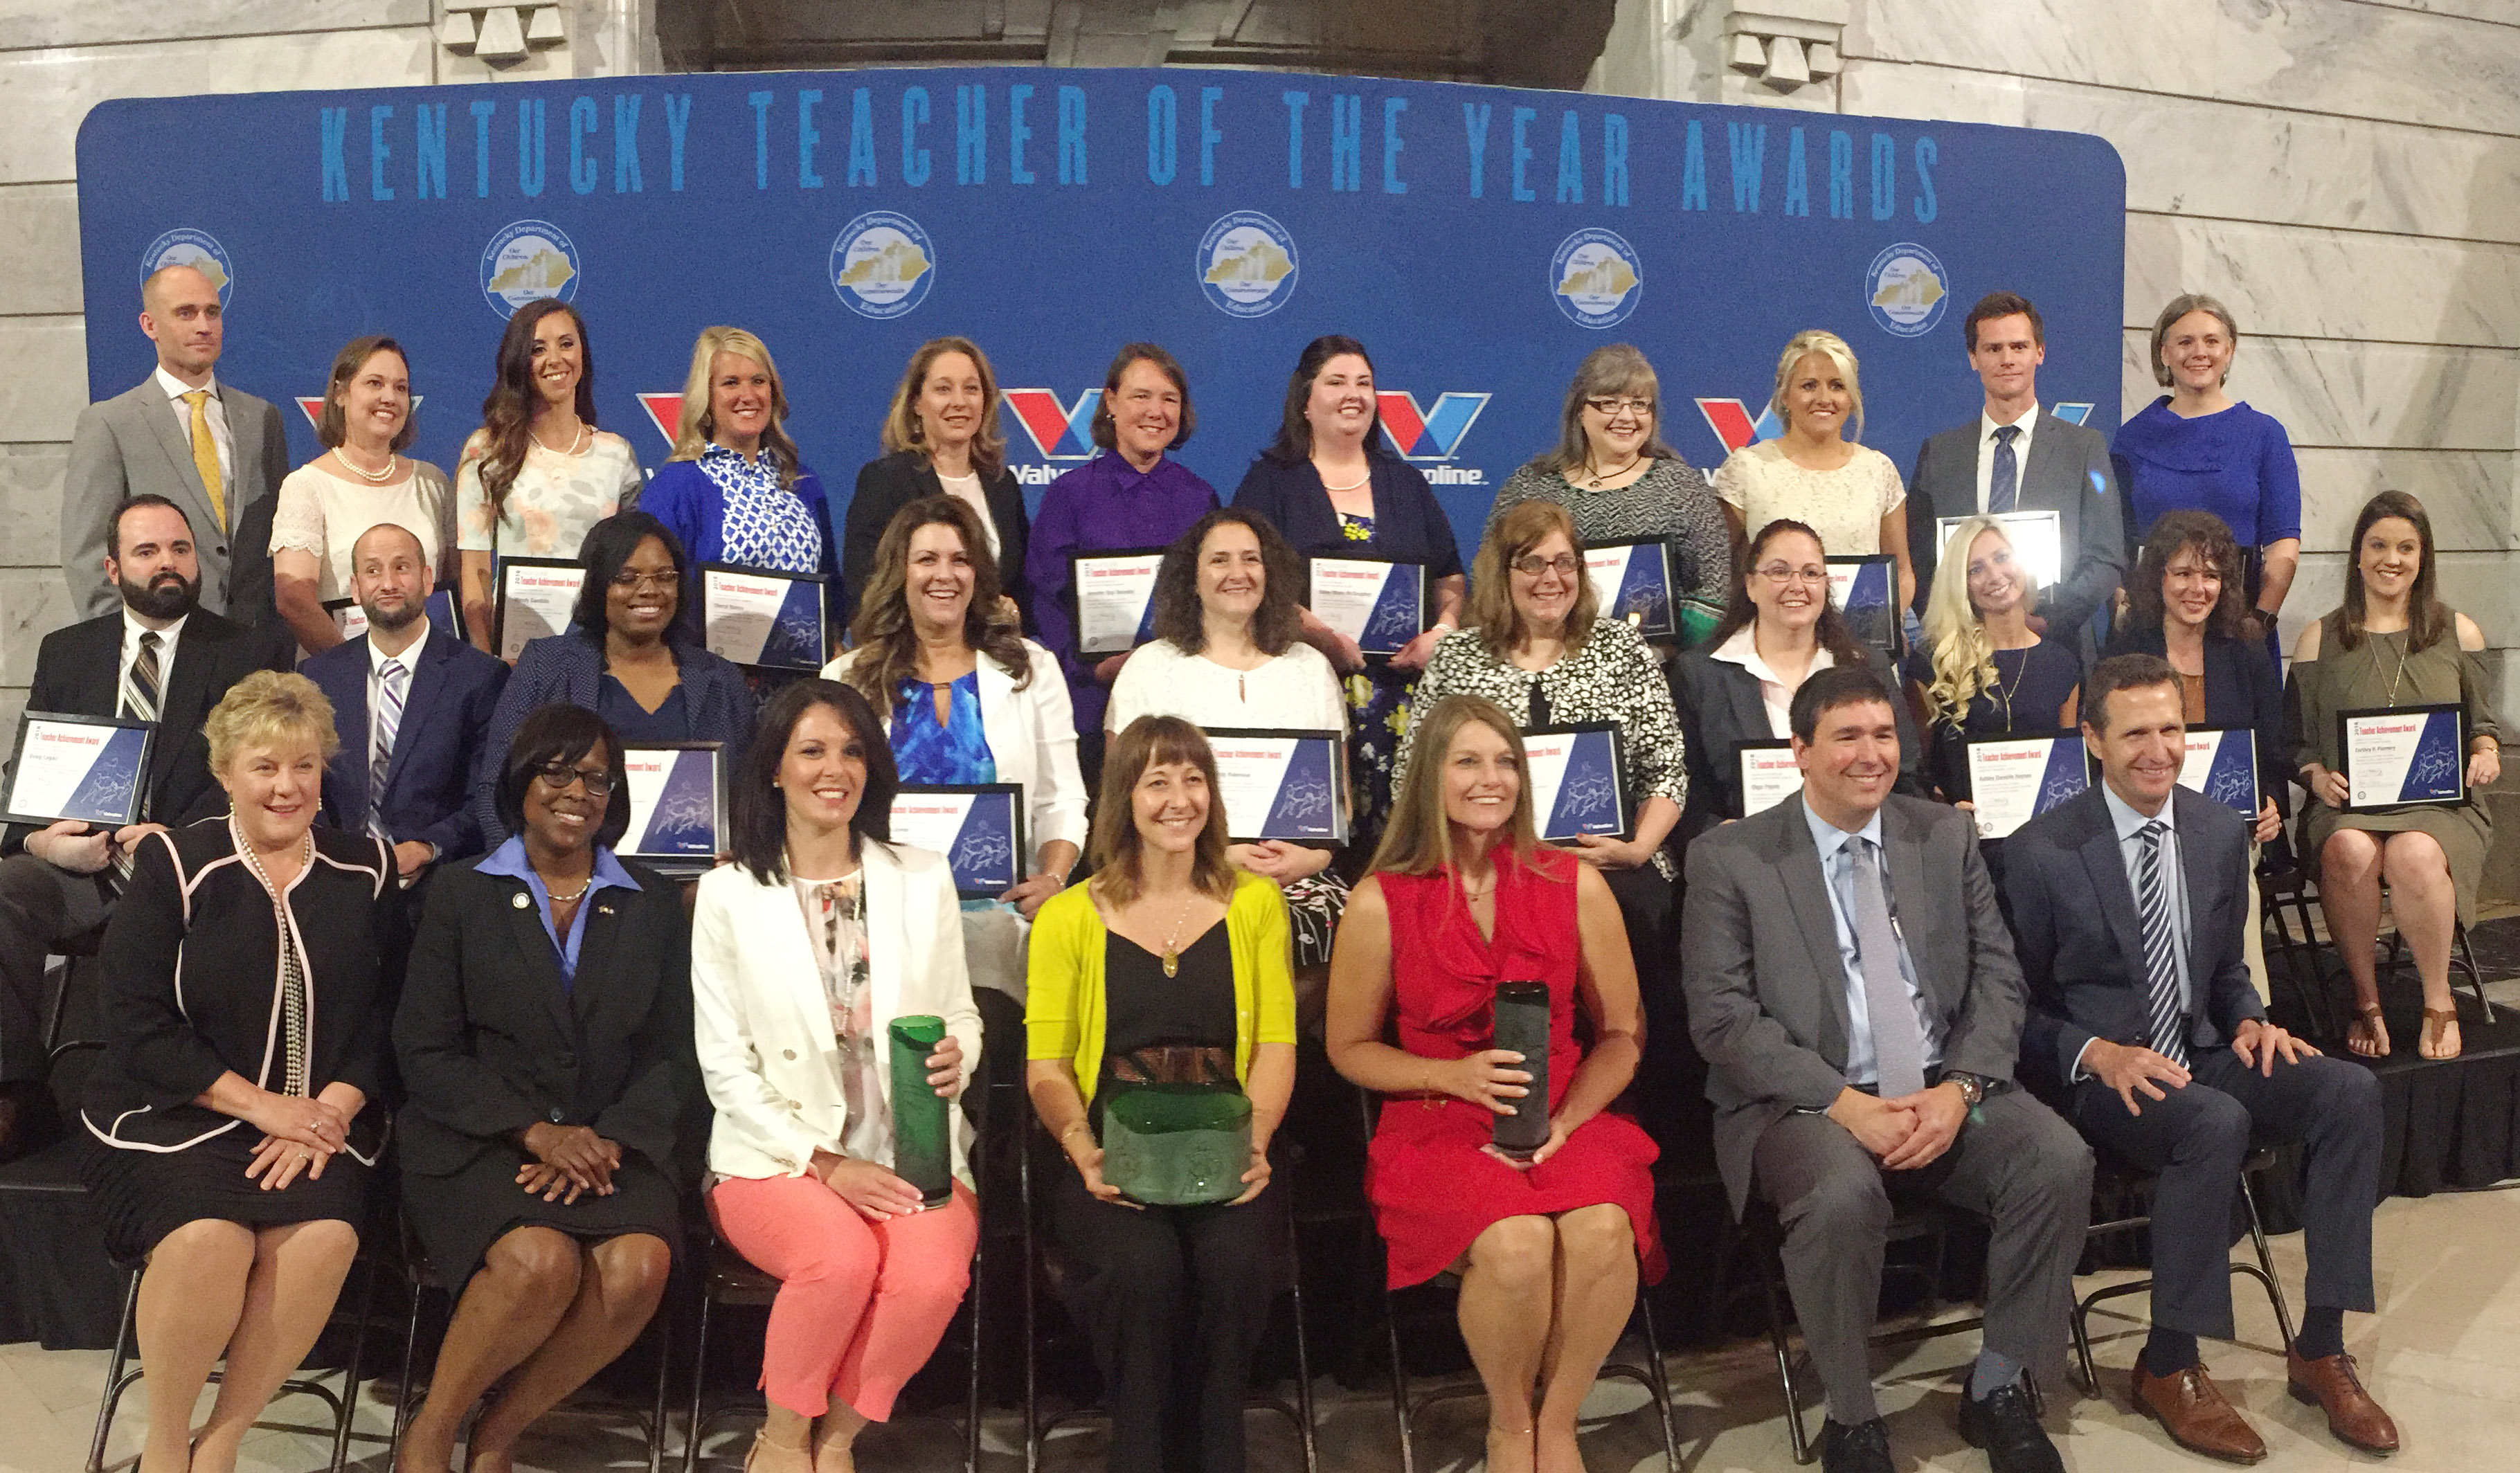 CHS teacher Ben Davis, second row, second from left, poses for a photo with the other award winners.